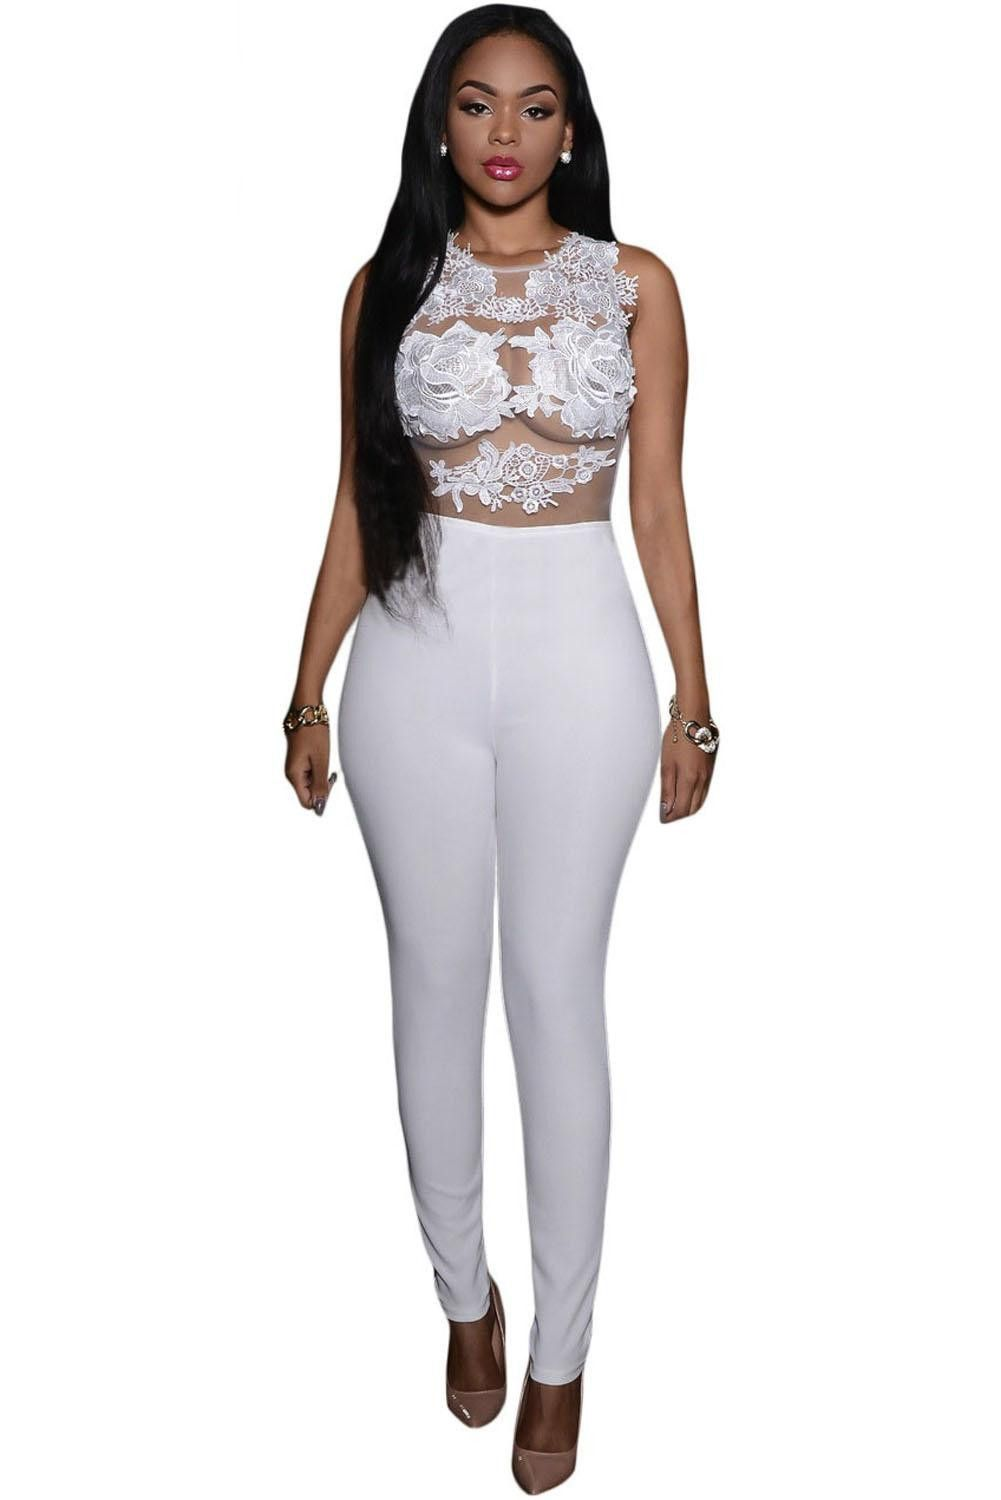 Lace bodysuit south africa  Women Jumpsuits Sexy Forla Lace Transparent Top White Black Red